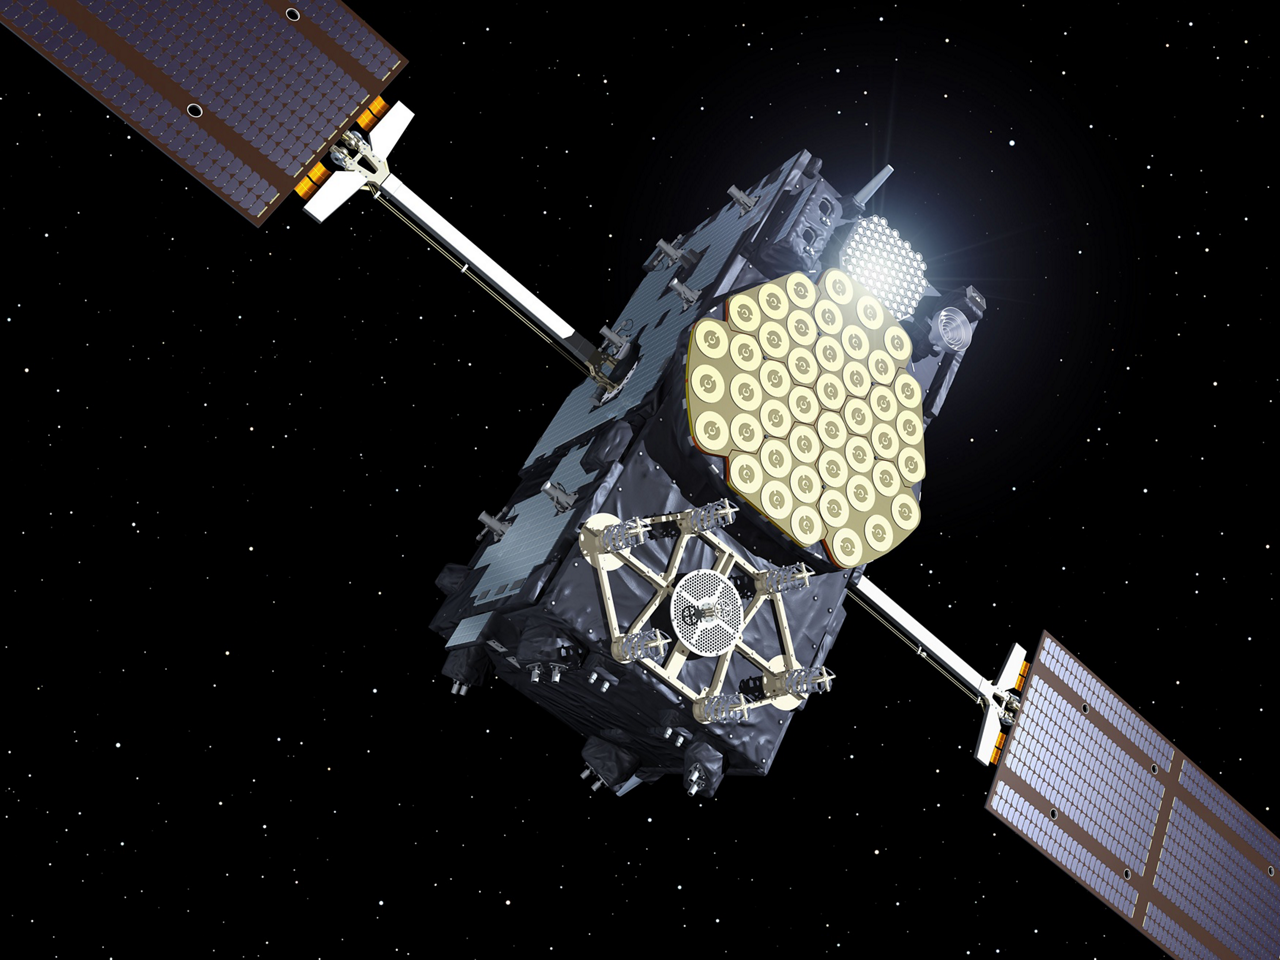 A representation of an Airbus-produced Galileo satellite in orbit.